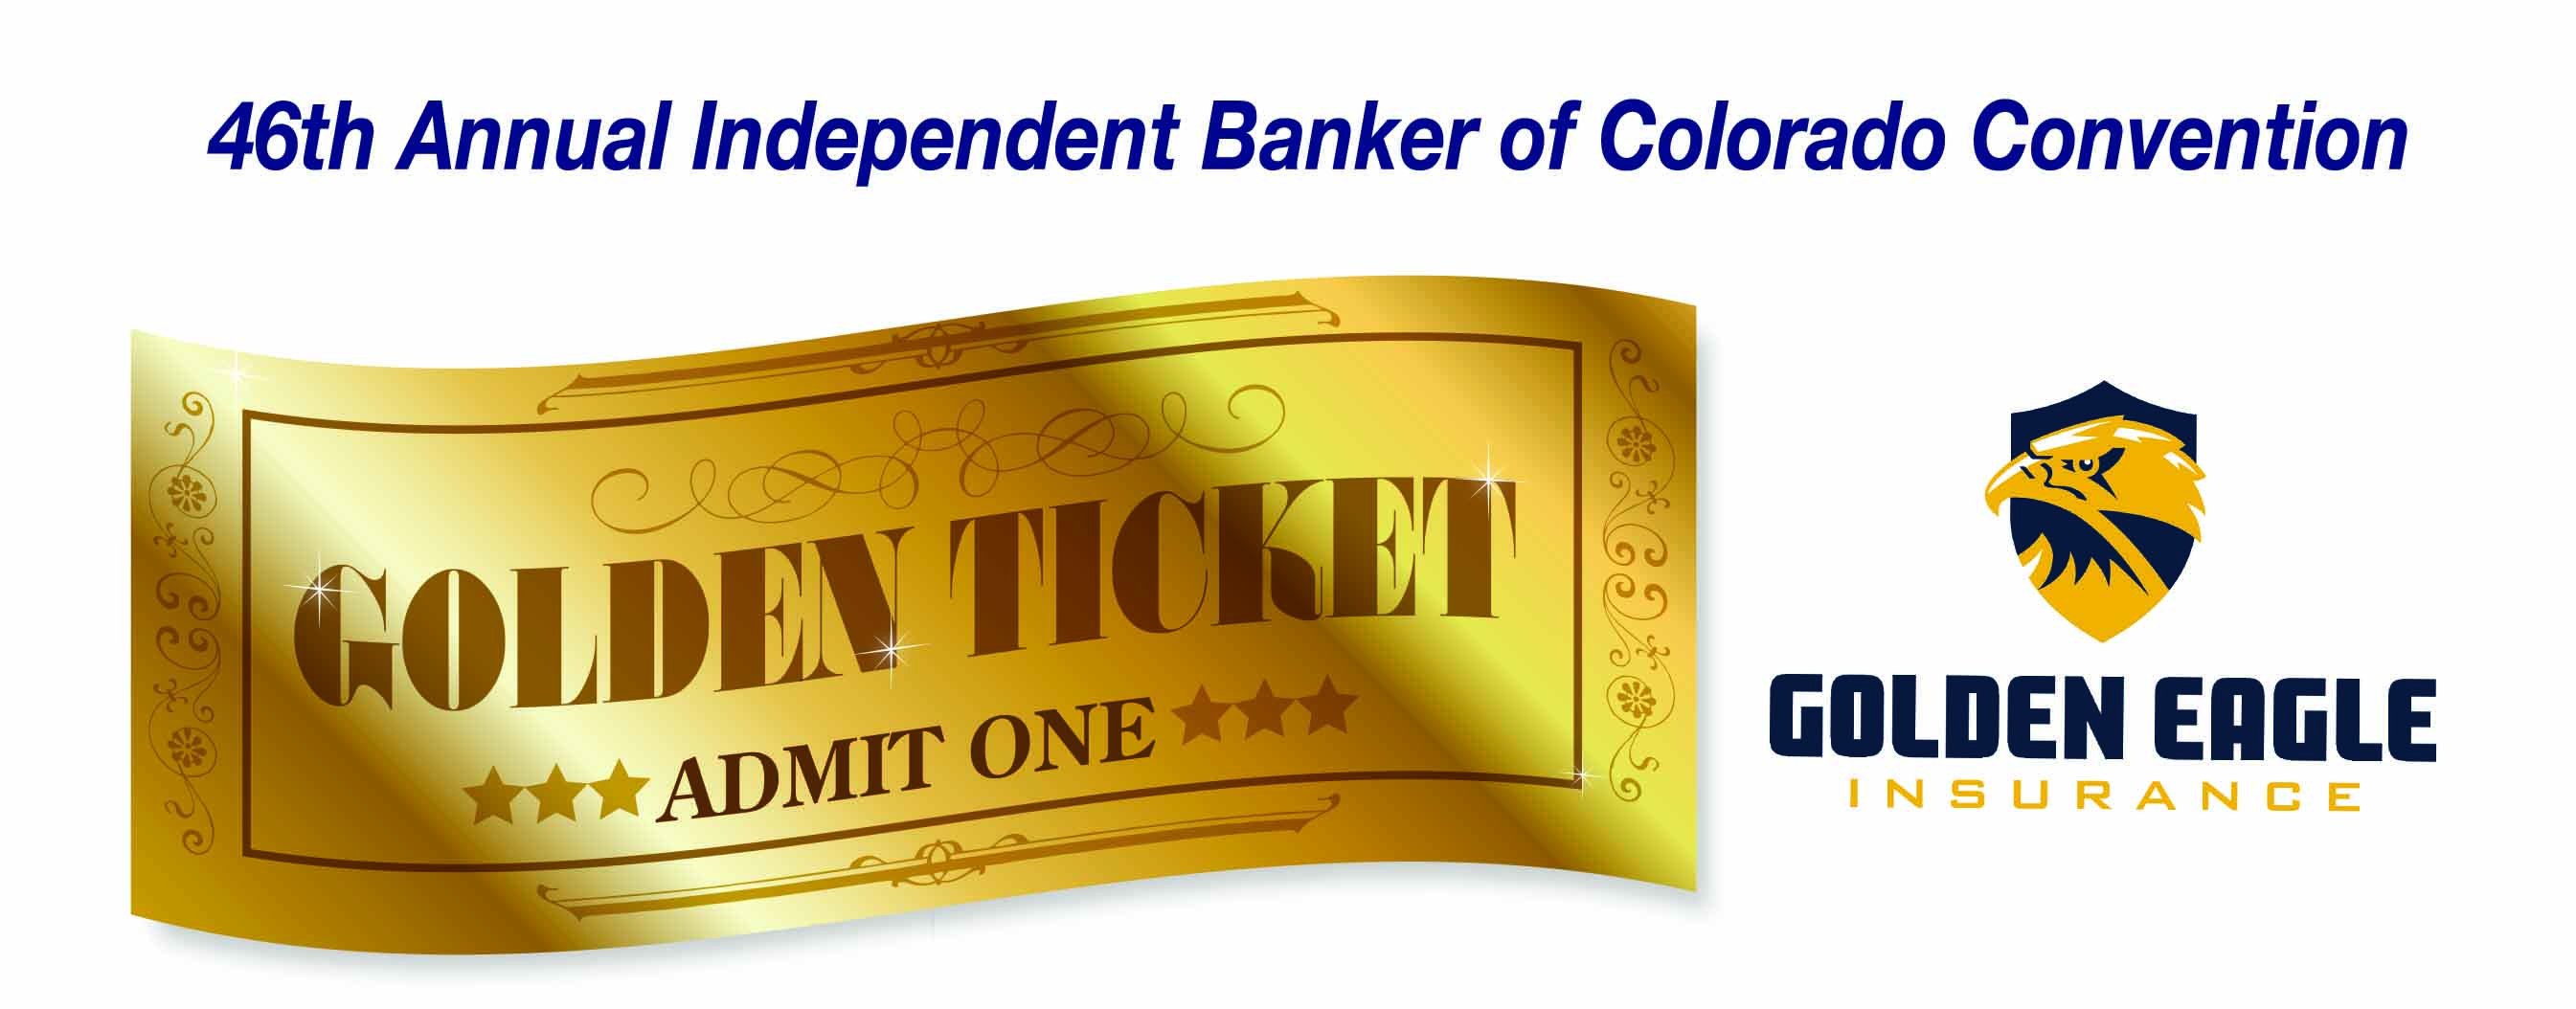 Golden Eagle Insurance Independent Banker of Colorado Convention